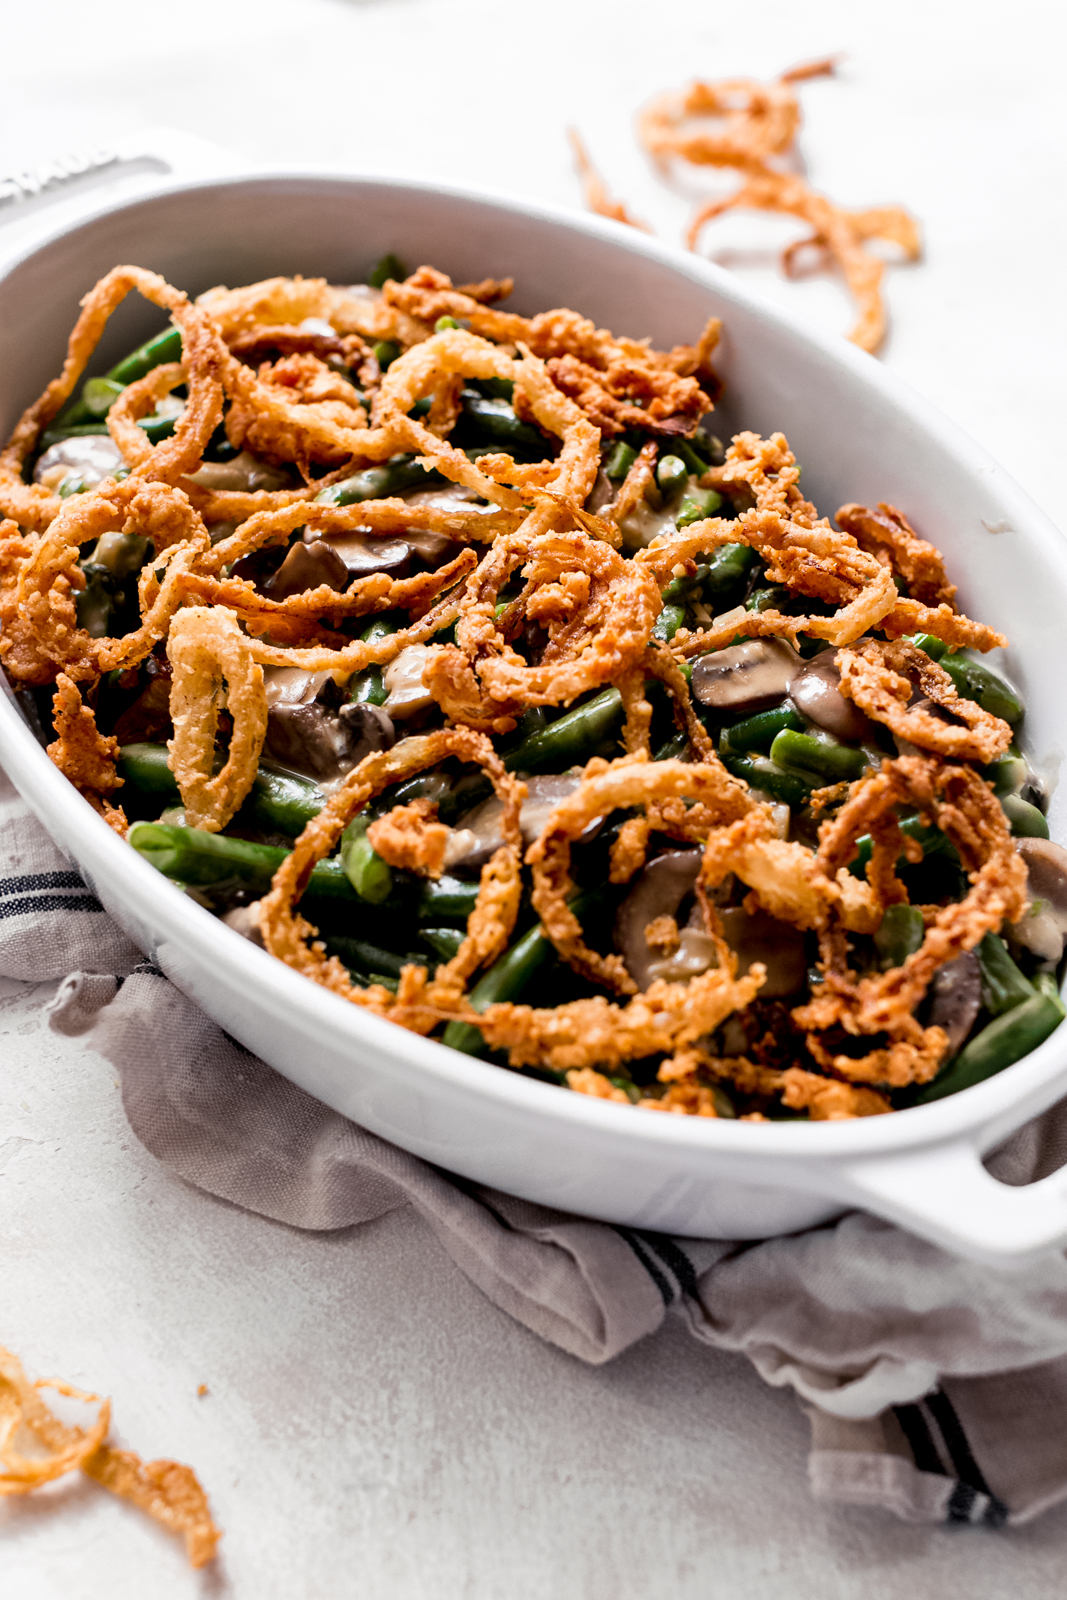 freshly made dish of green bean casserole on grey surface topped with fried onions on tea towel